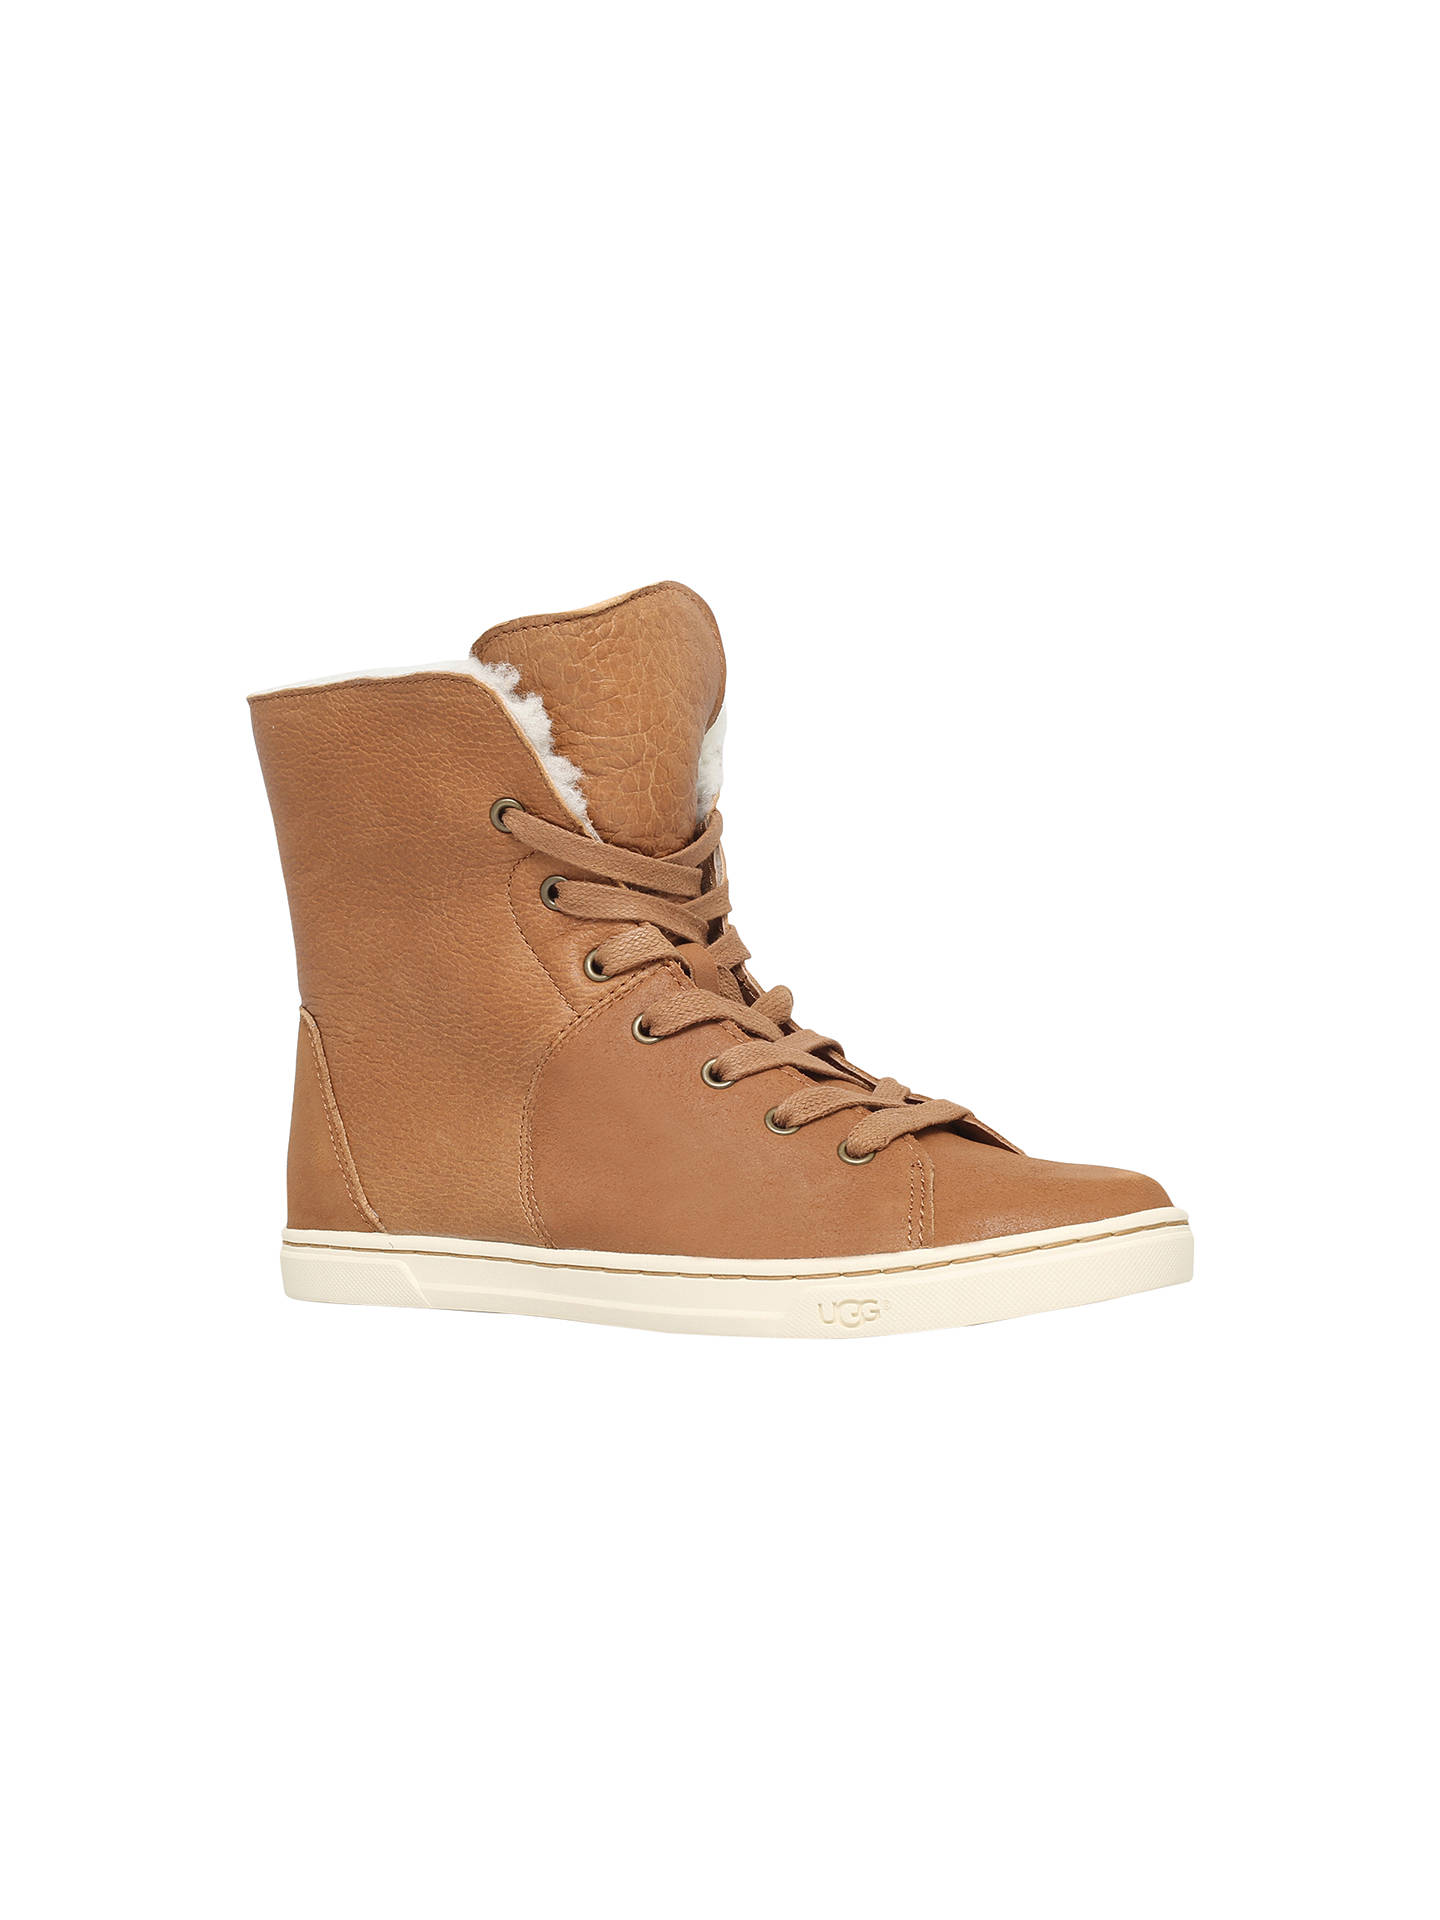 6c3c7f27bf5 UGG Croft Flat Lace Up Ankle Boots, Brown Suede at John Lewis & Partners